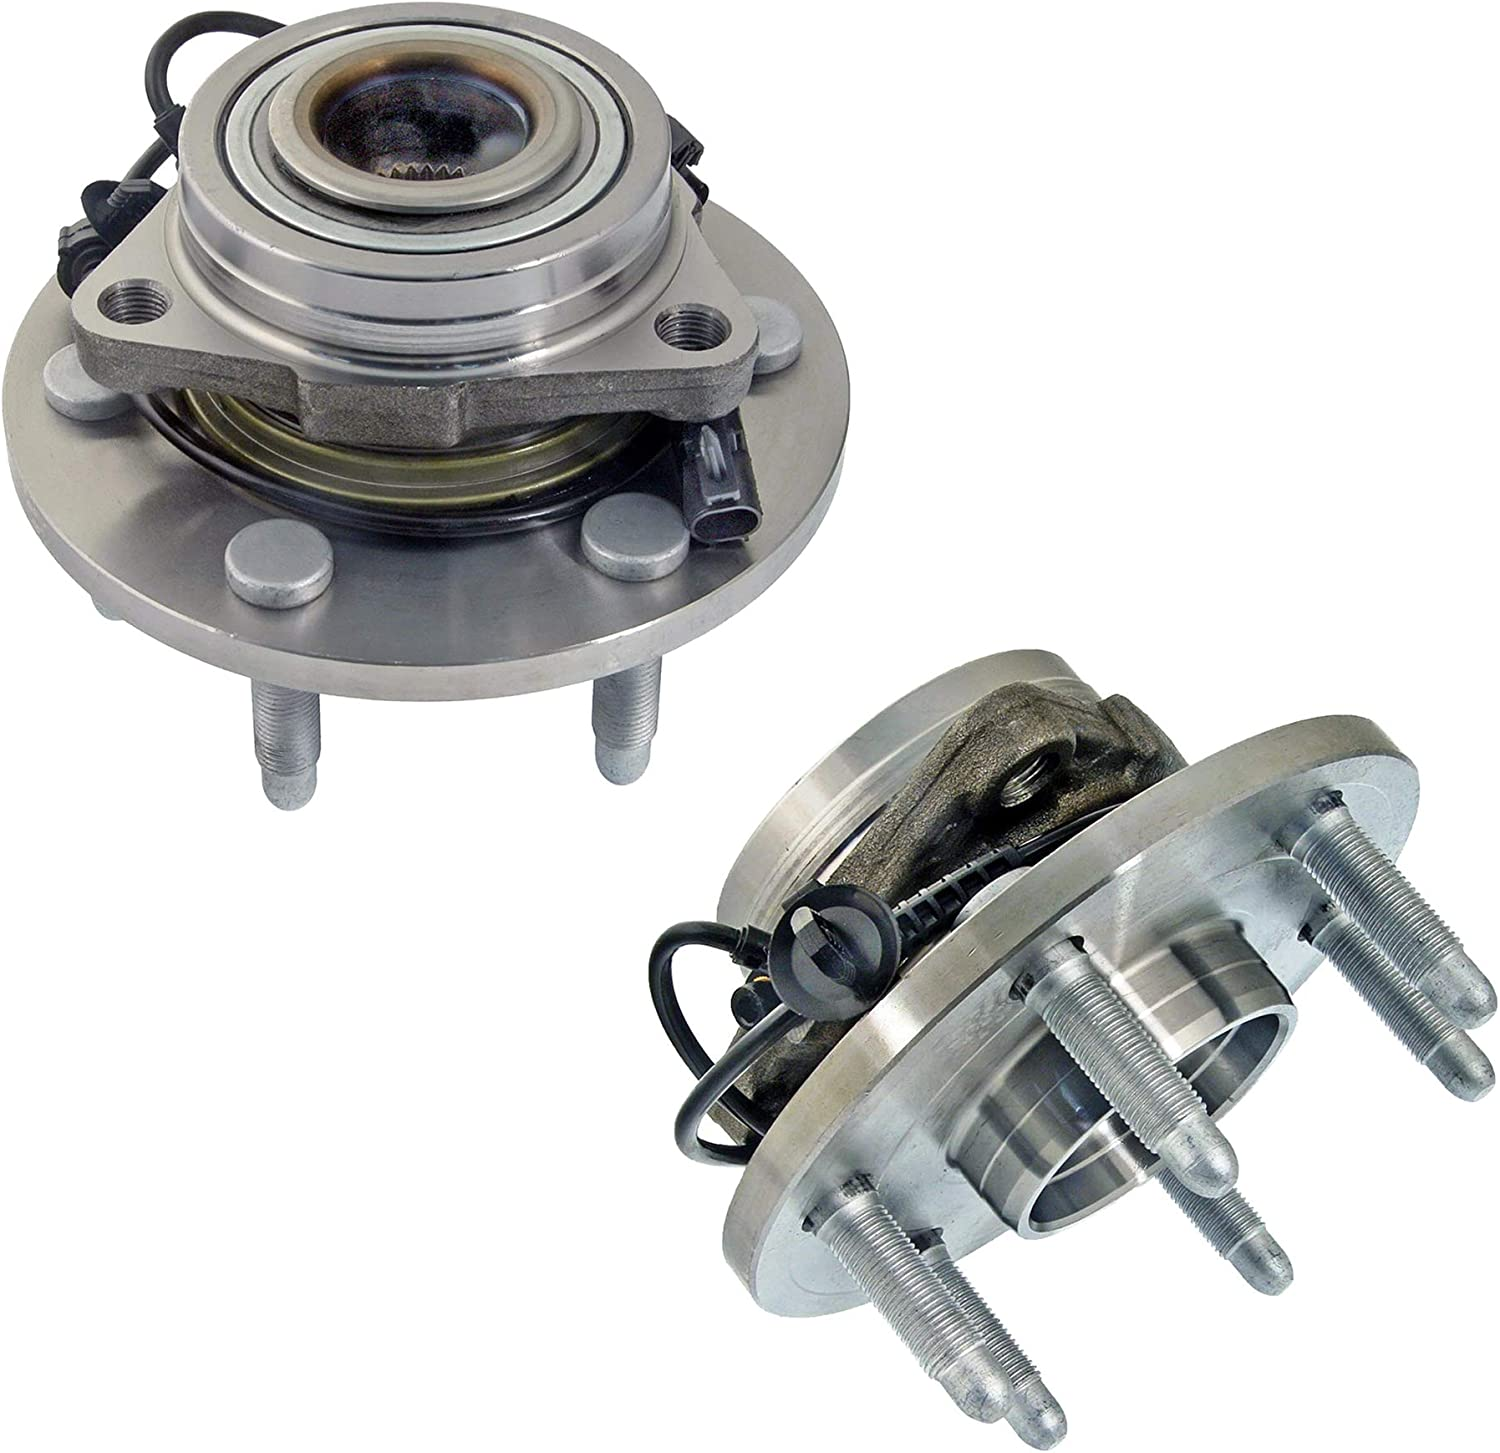 Detroit Axle 515096 Front Wheel Bearing and Hub Assembly 2pc Set